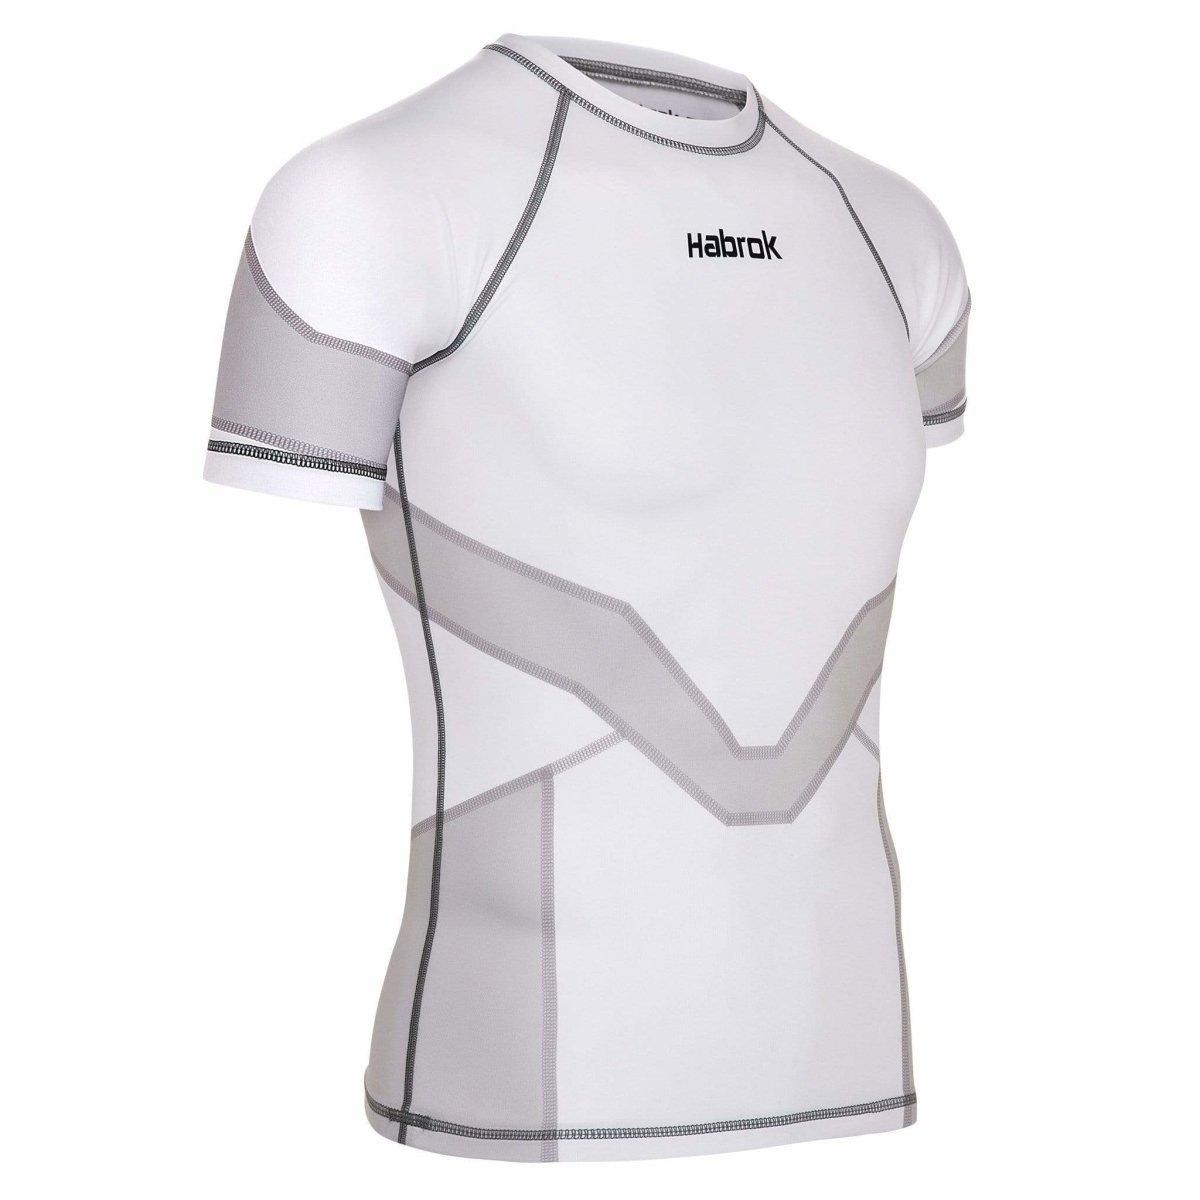 Habrok Rash Guard S / GREY Transform 2.0 | Ranked Rash Guard Men | Half Sleeve | Men